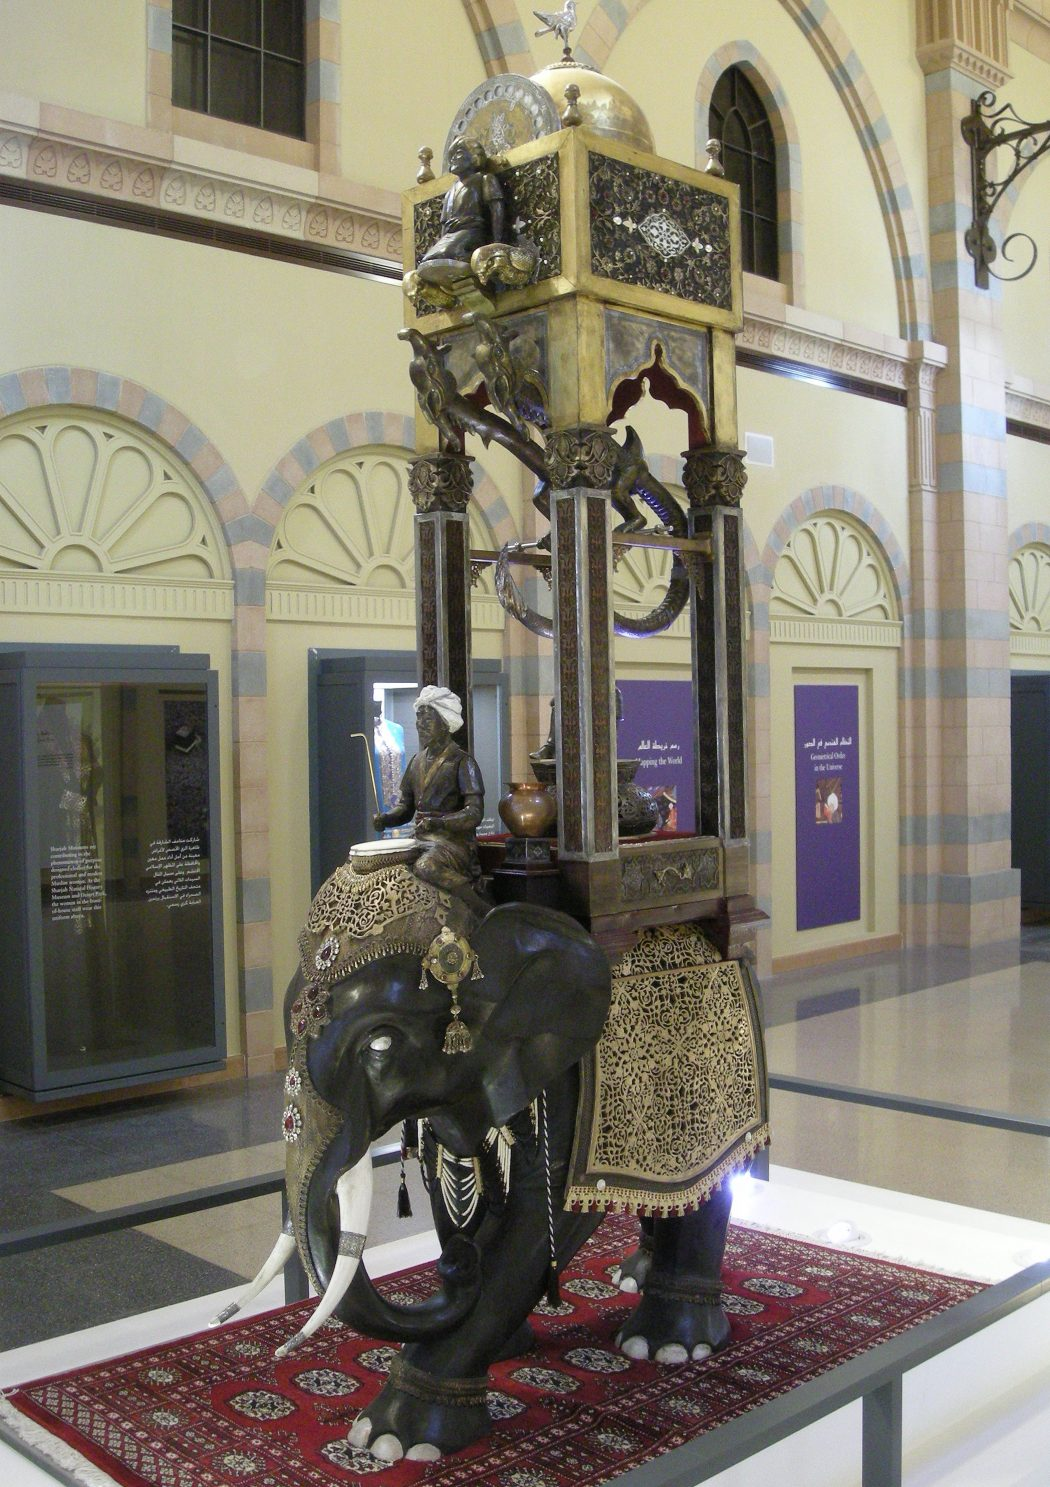 elephant-water-clock Top 10 Muslim Inventions